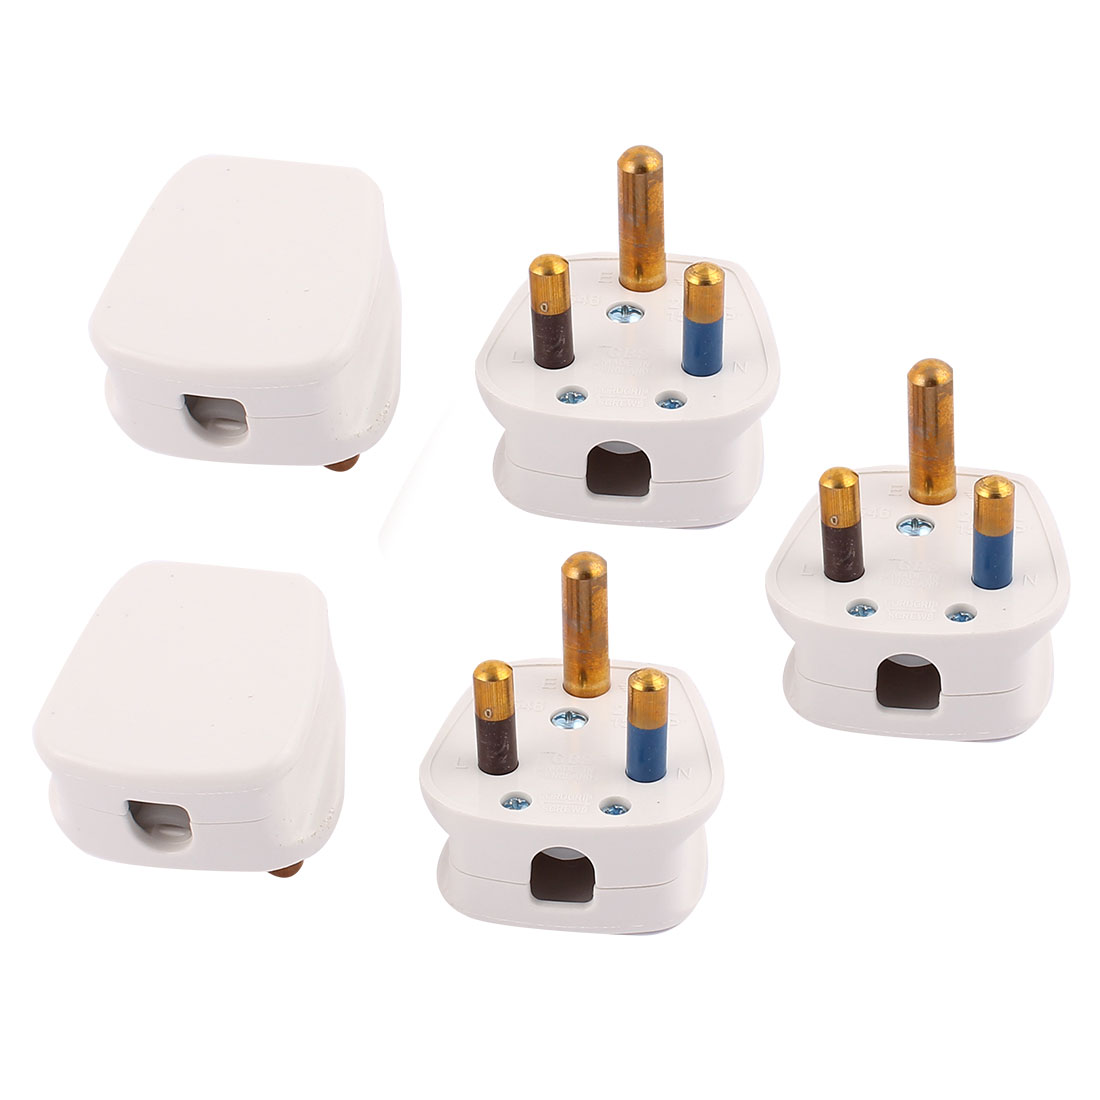 5Pcs White AC 250V 15A South Africa Plug Adapter Connector for Air conditioning